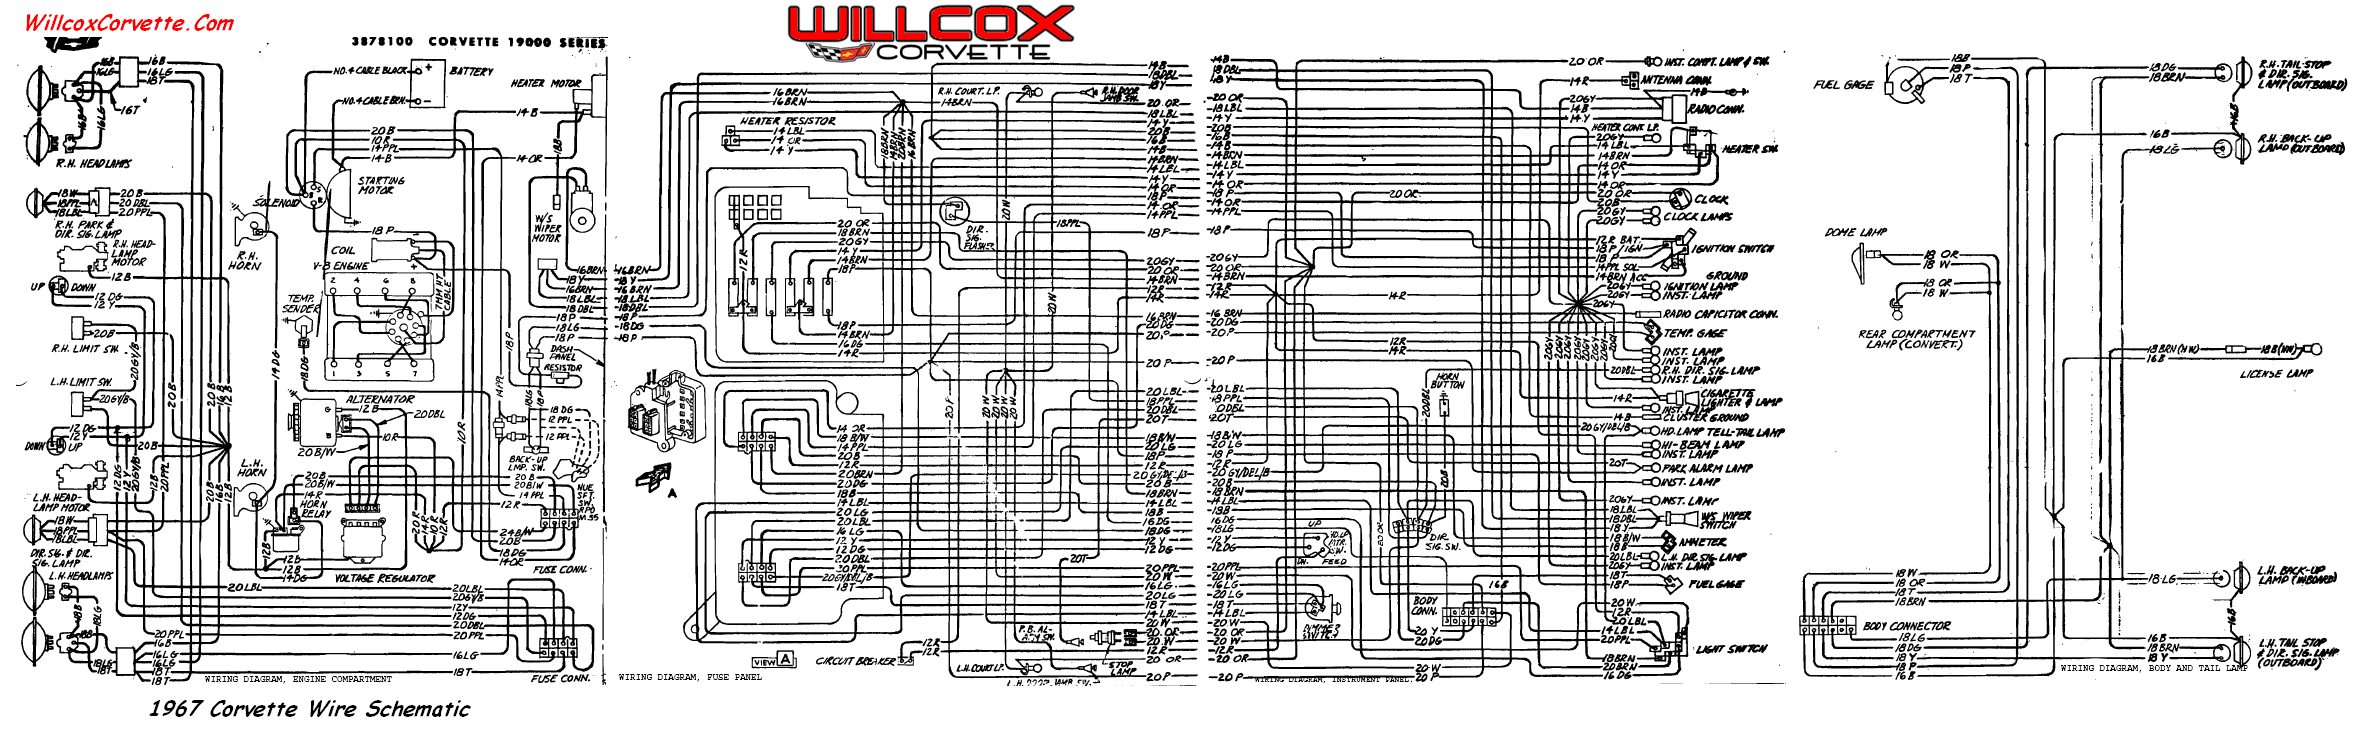 67 wire schematic for tracing wires 1985 corvette wiring diagram 1985 cutlass supreme wiring diagram  at pacquiaovsvargaslive.co